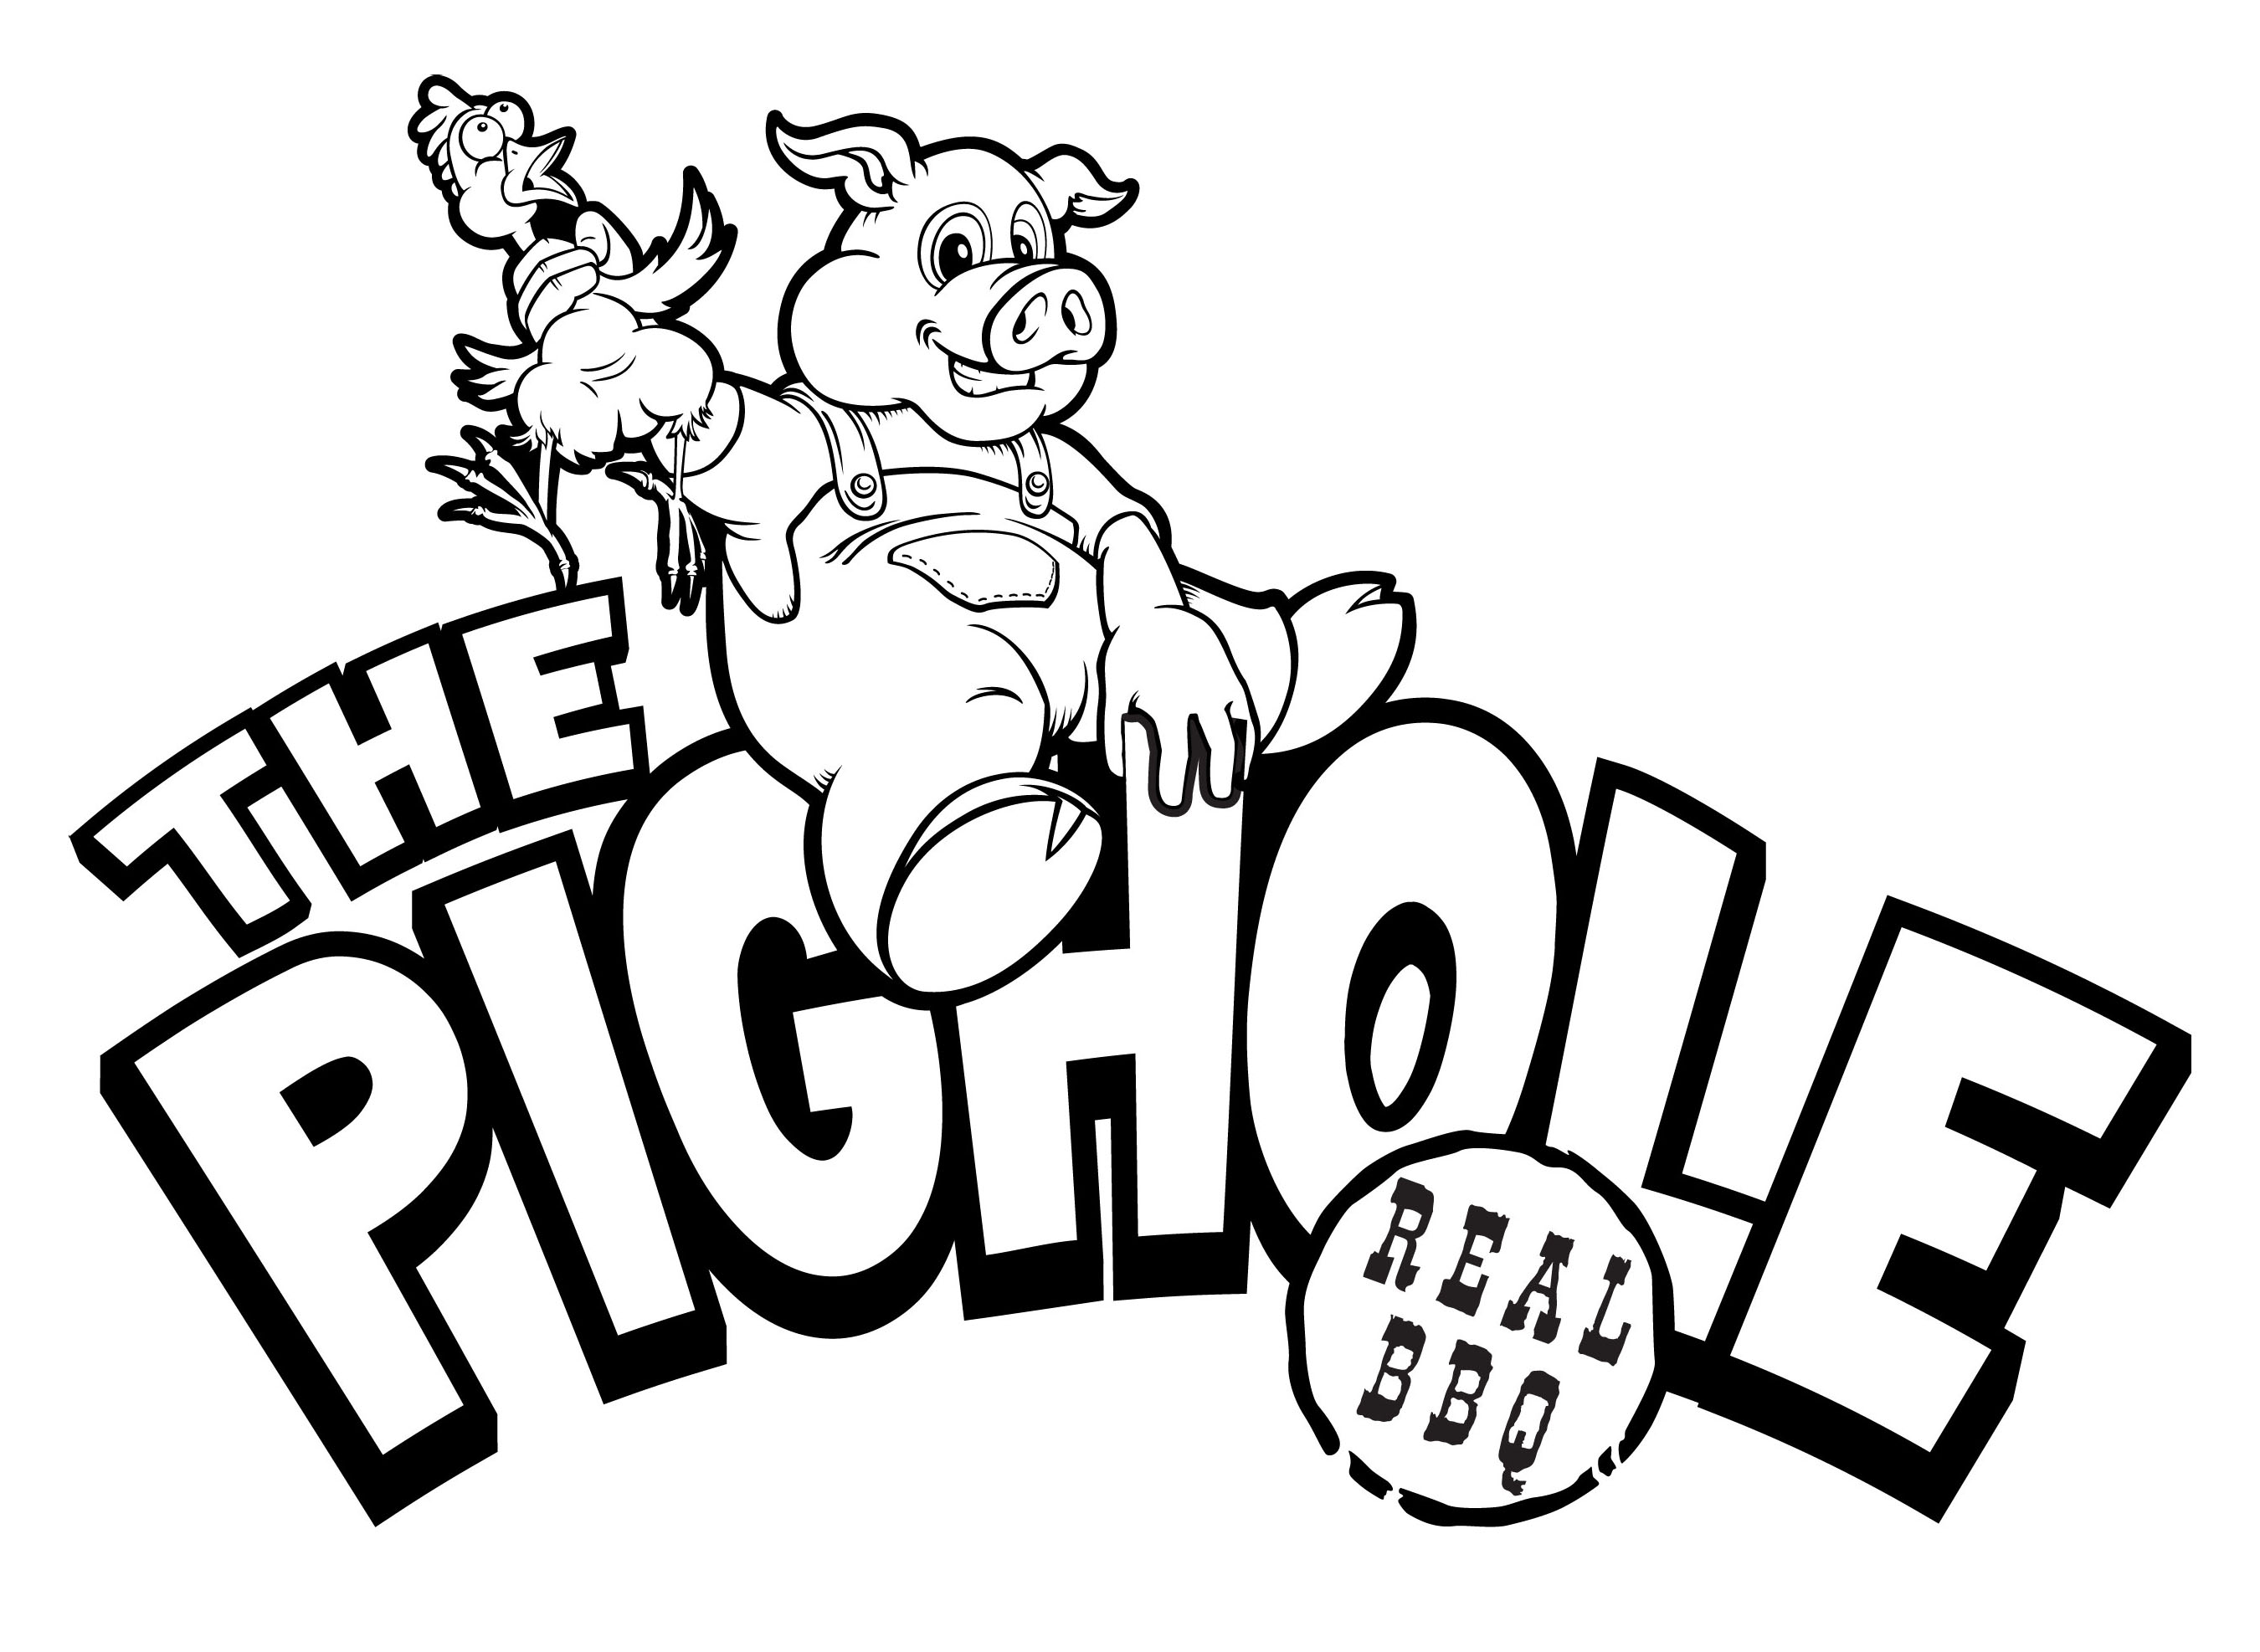 Free Bbq Pig Logo, Download Free Clip Art, Free Clip Art on Clipart.